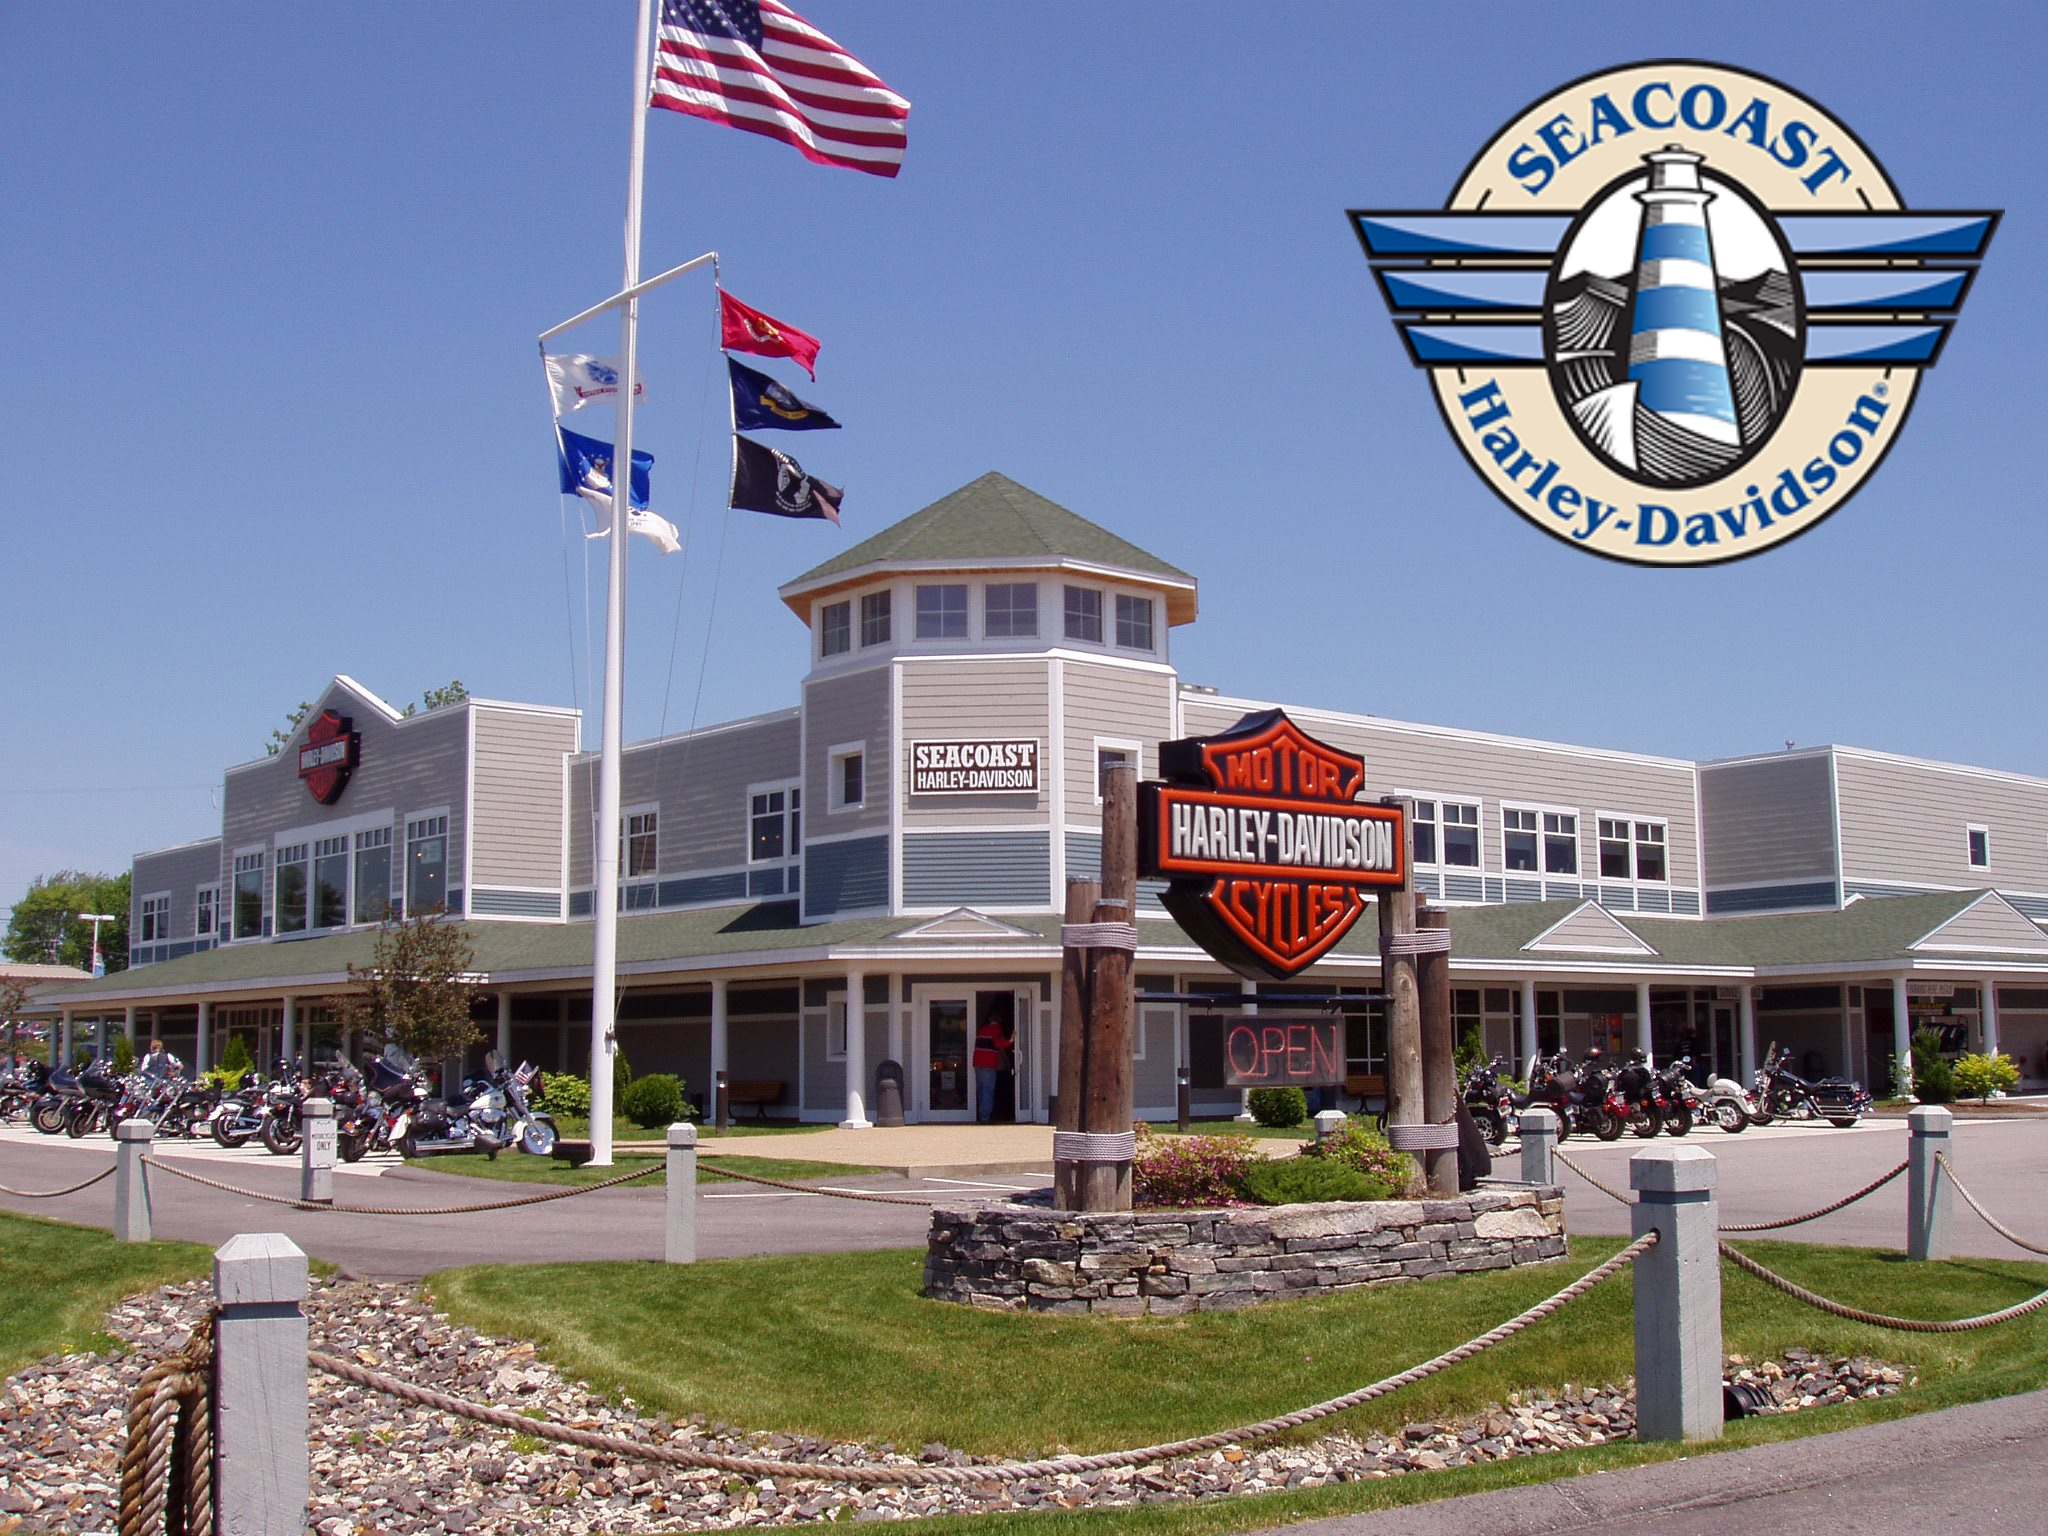 Seacoast Harley-Davidson® is located in North Hampton, New Hampshire. It has been the seacoast's only dealership since 1982. Seacoast H-D has won the Gold Bar and Shield Award for the past three years. Stop in on your way to the beach, or follow us on our  Facebook page ! Live free and ride NH!